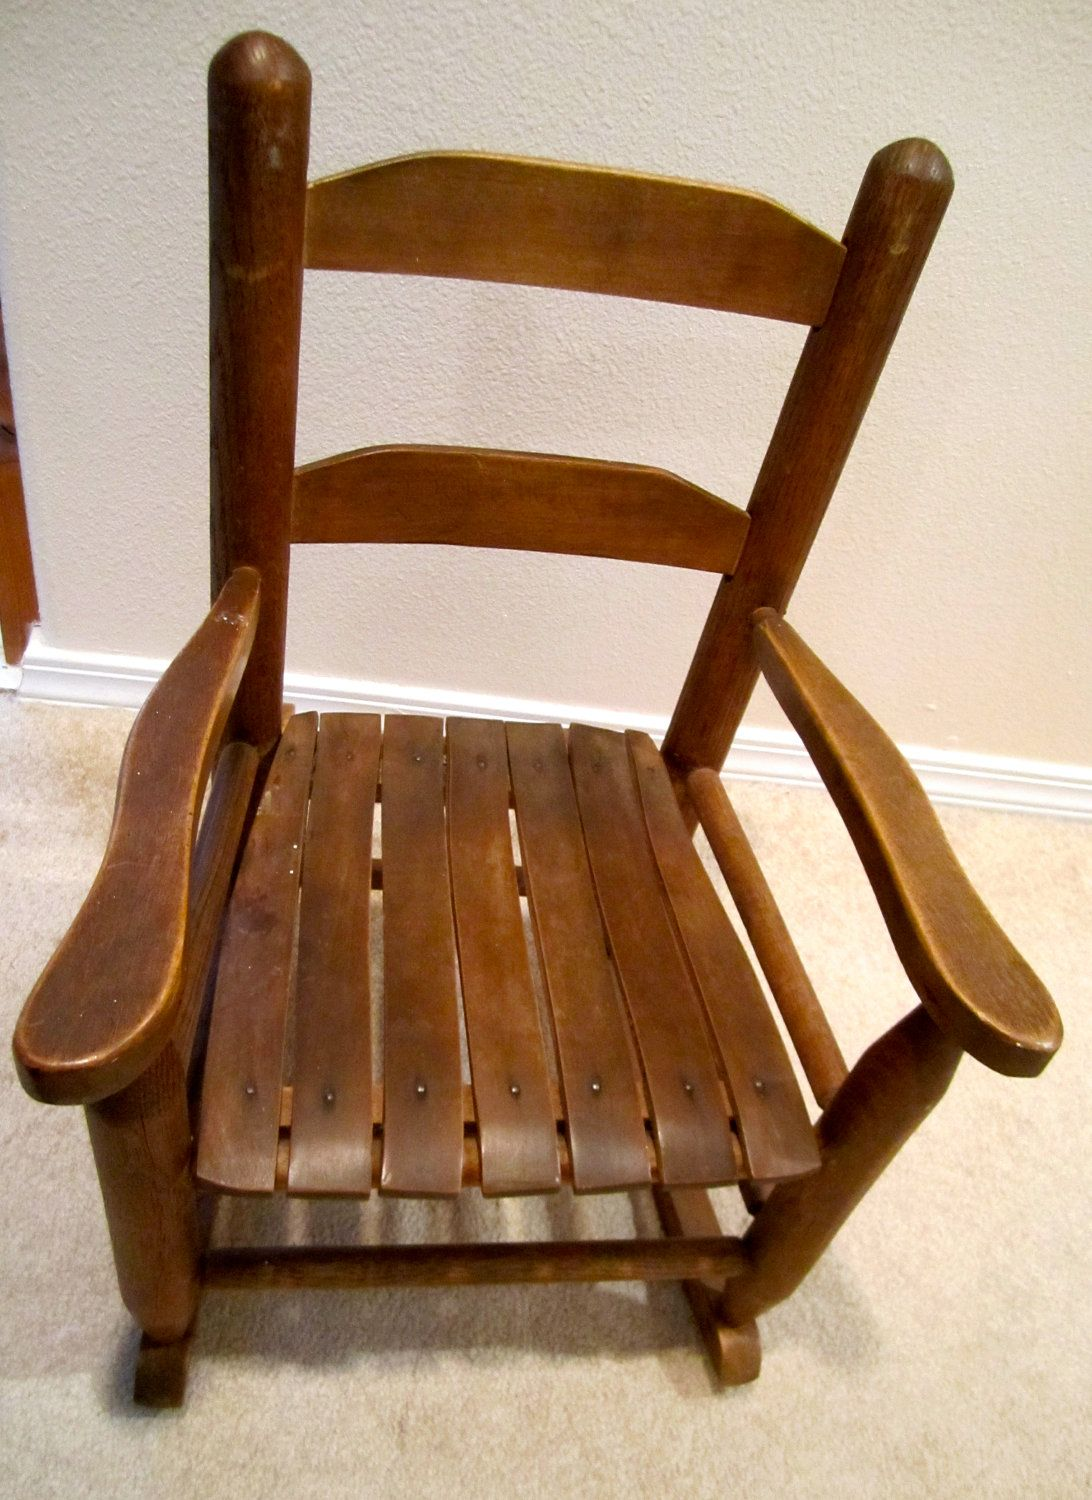 Natural Wood Childs Rocker Vintage Slated Seat From Early 1960 S